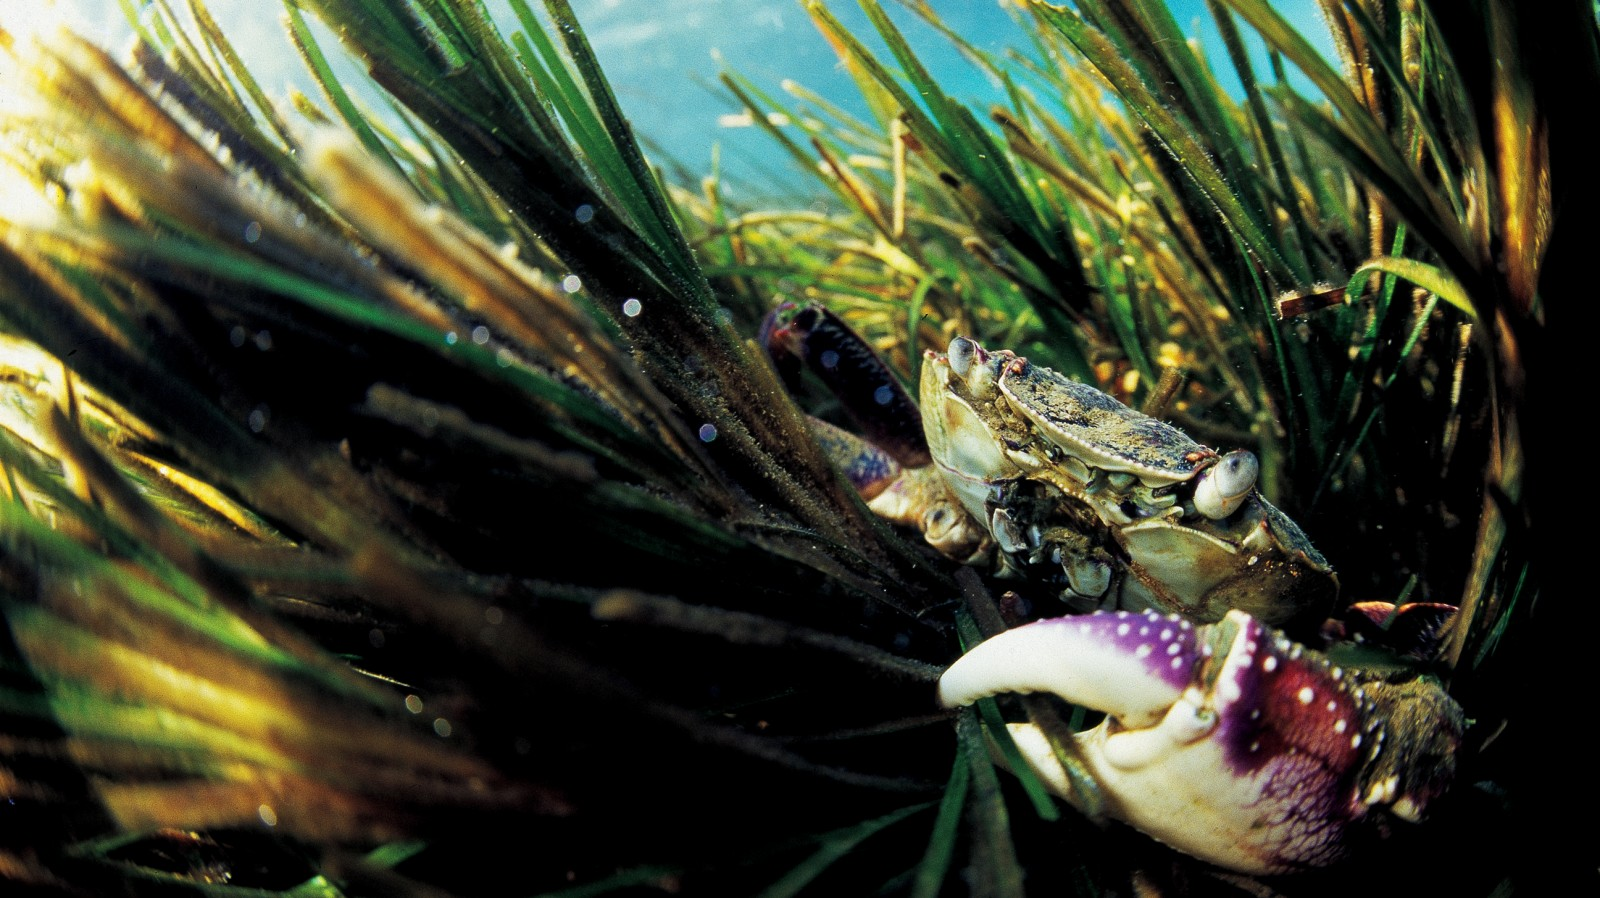 The Purple Rock Crab (Leptograpsus variegatus) normally lives on fairly exposed intertidal reefs, so is far from home when exploring the eelgrass of the estuary.